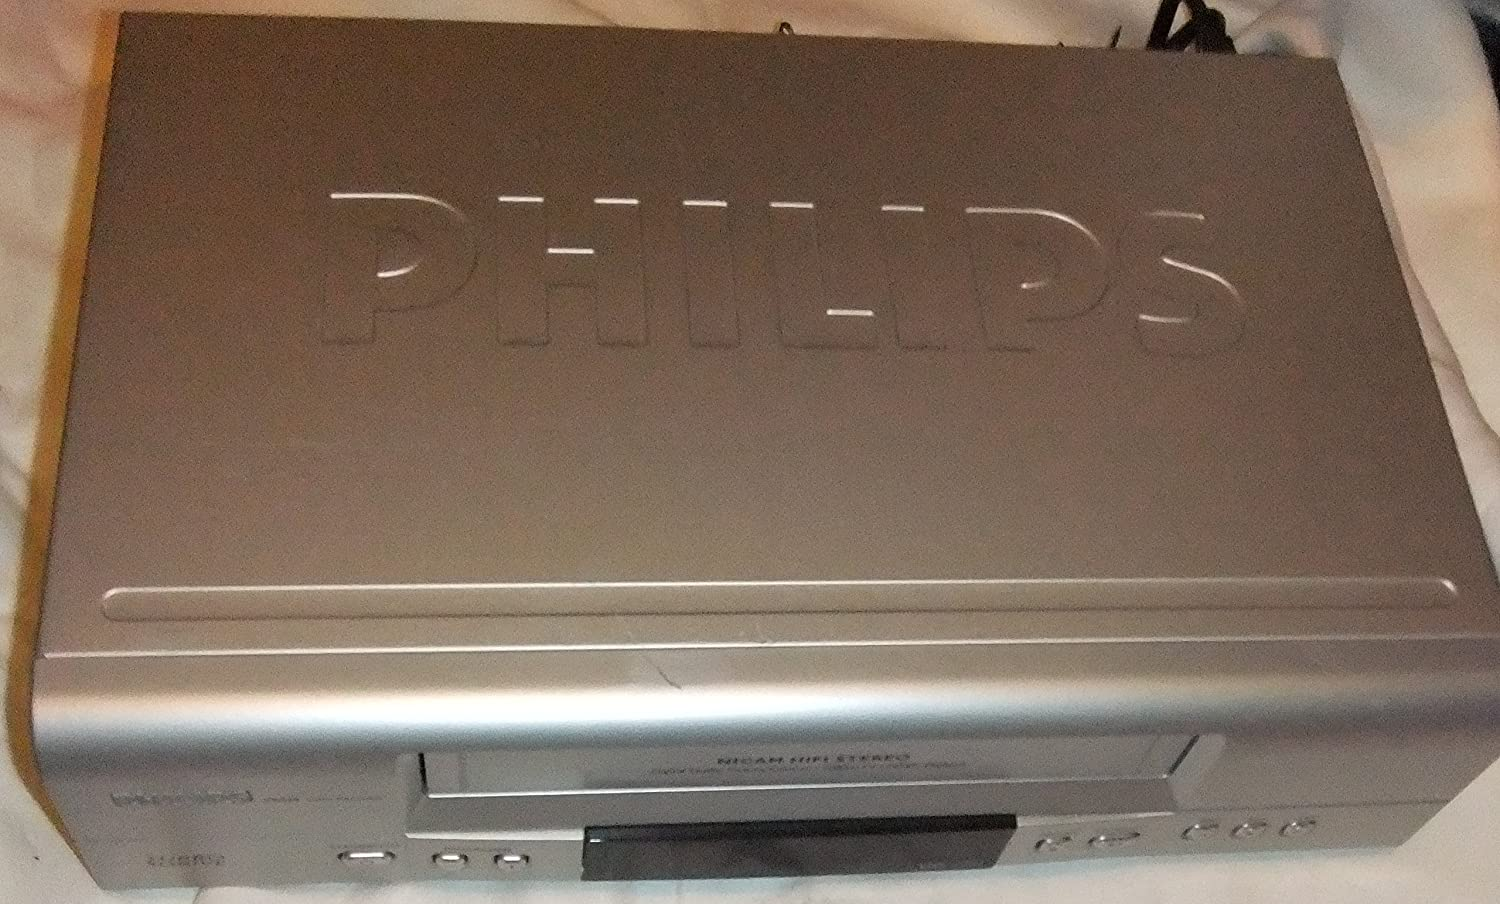 philips vr540 vcr player amazon co uk electronics rh amazon co uk Philips Schematics Philips Product Manuals